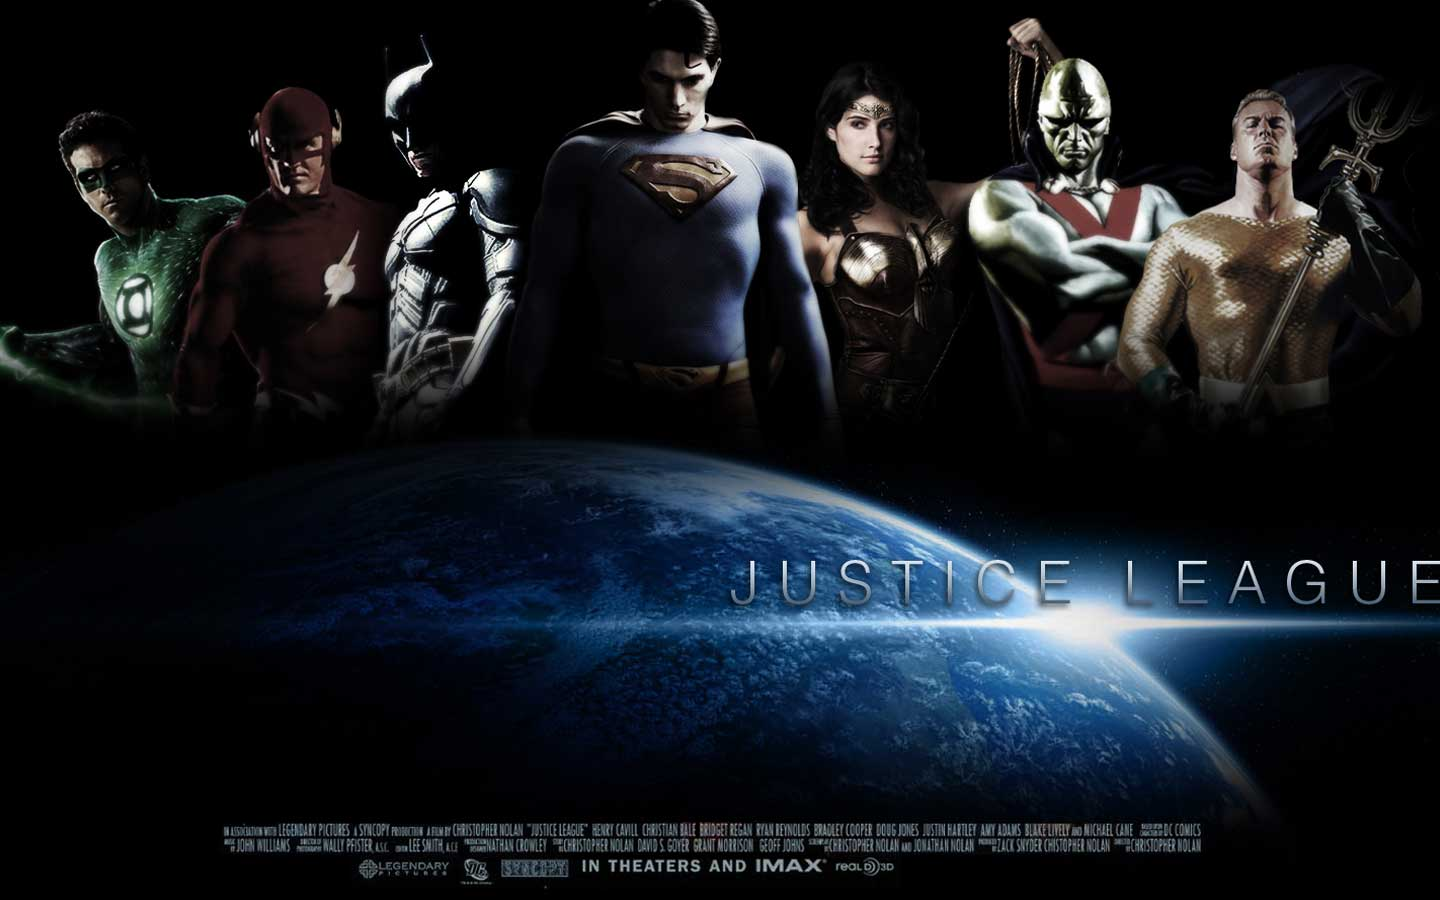 Cool Movie Wallpapers Hd Wallpaper Database 1440x900PX